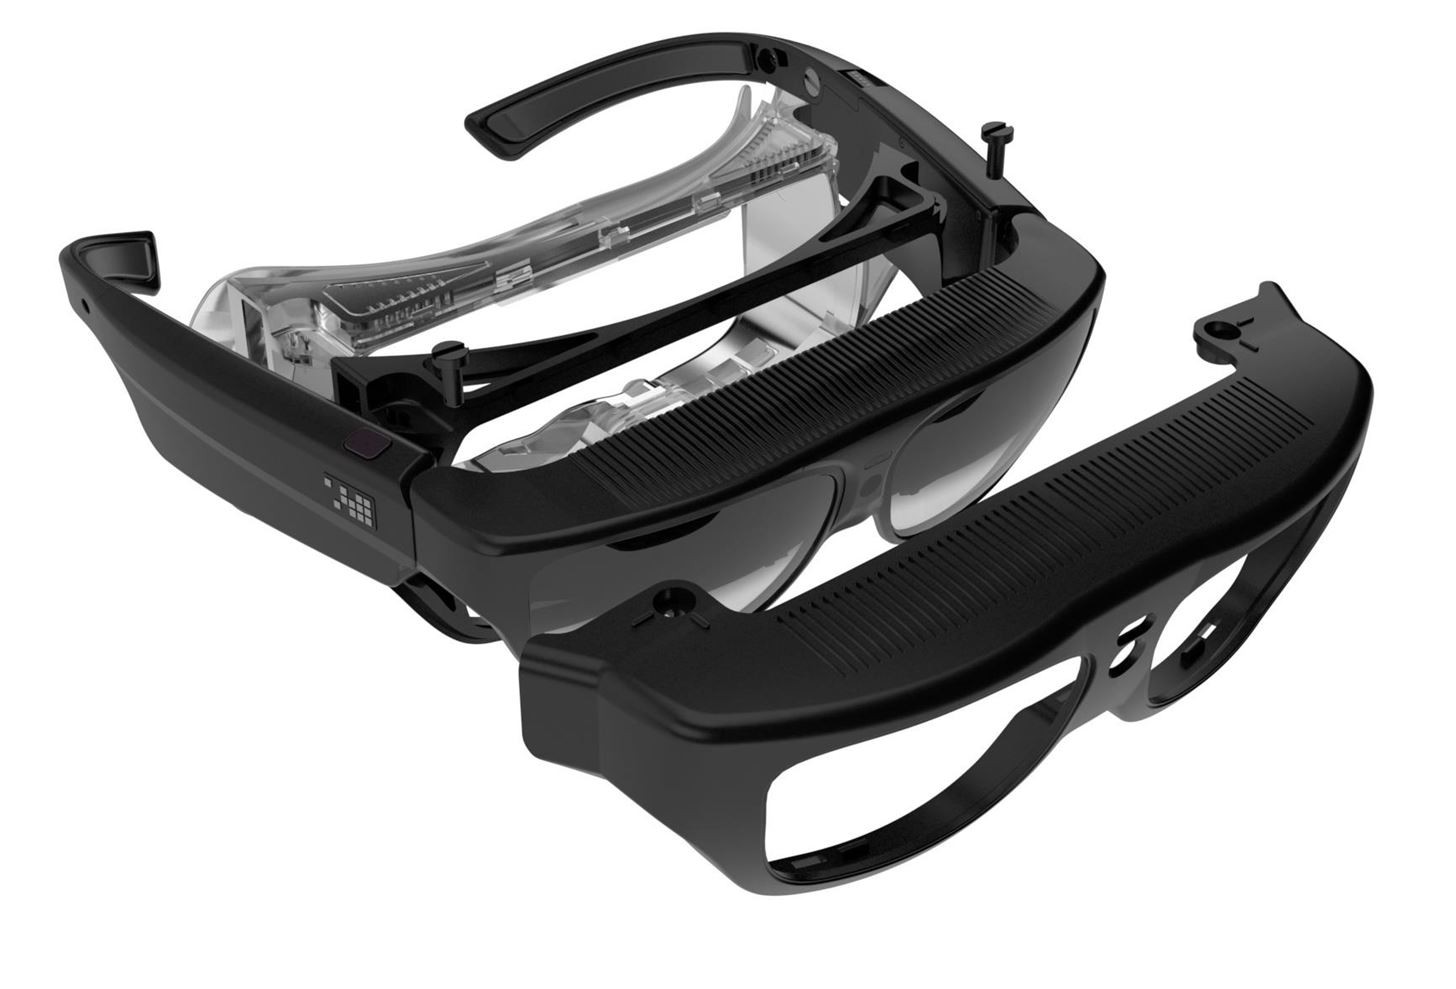 ODG's New R-7HL Are the First Rugged Smartglasses Made Specifically for the Industrial Workforce